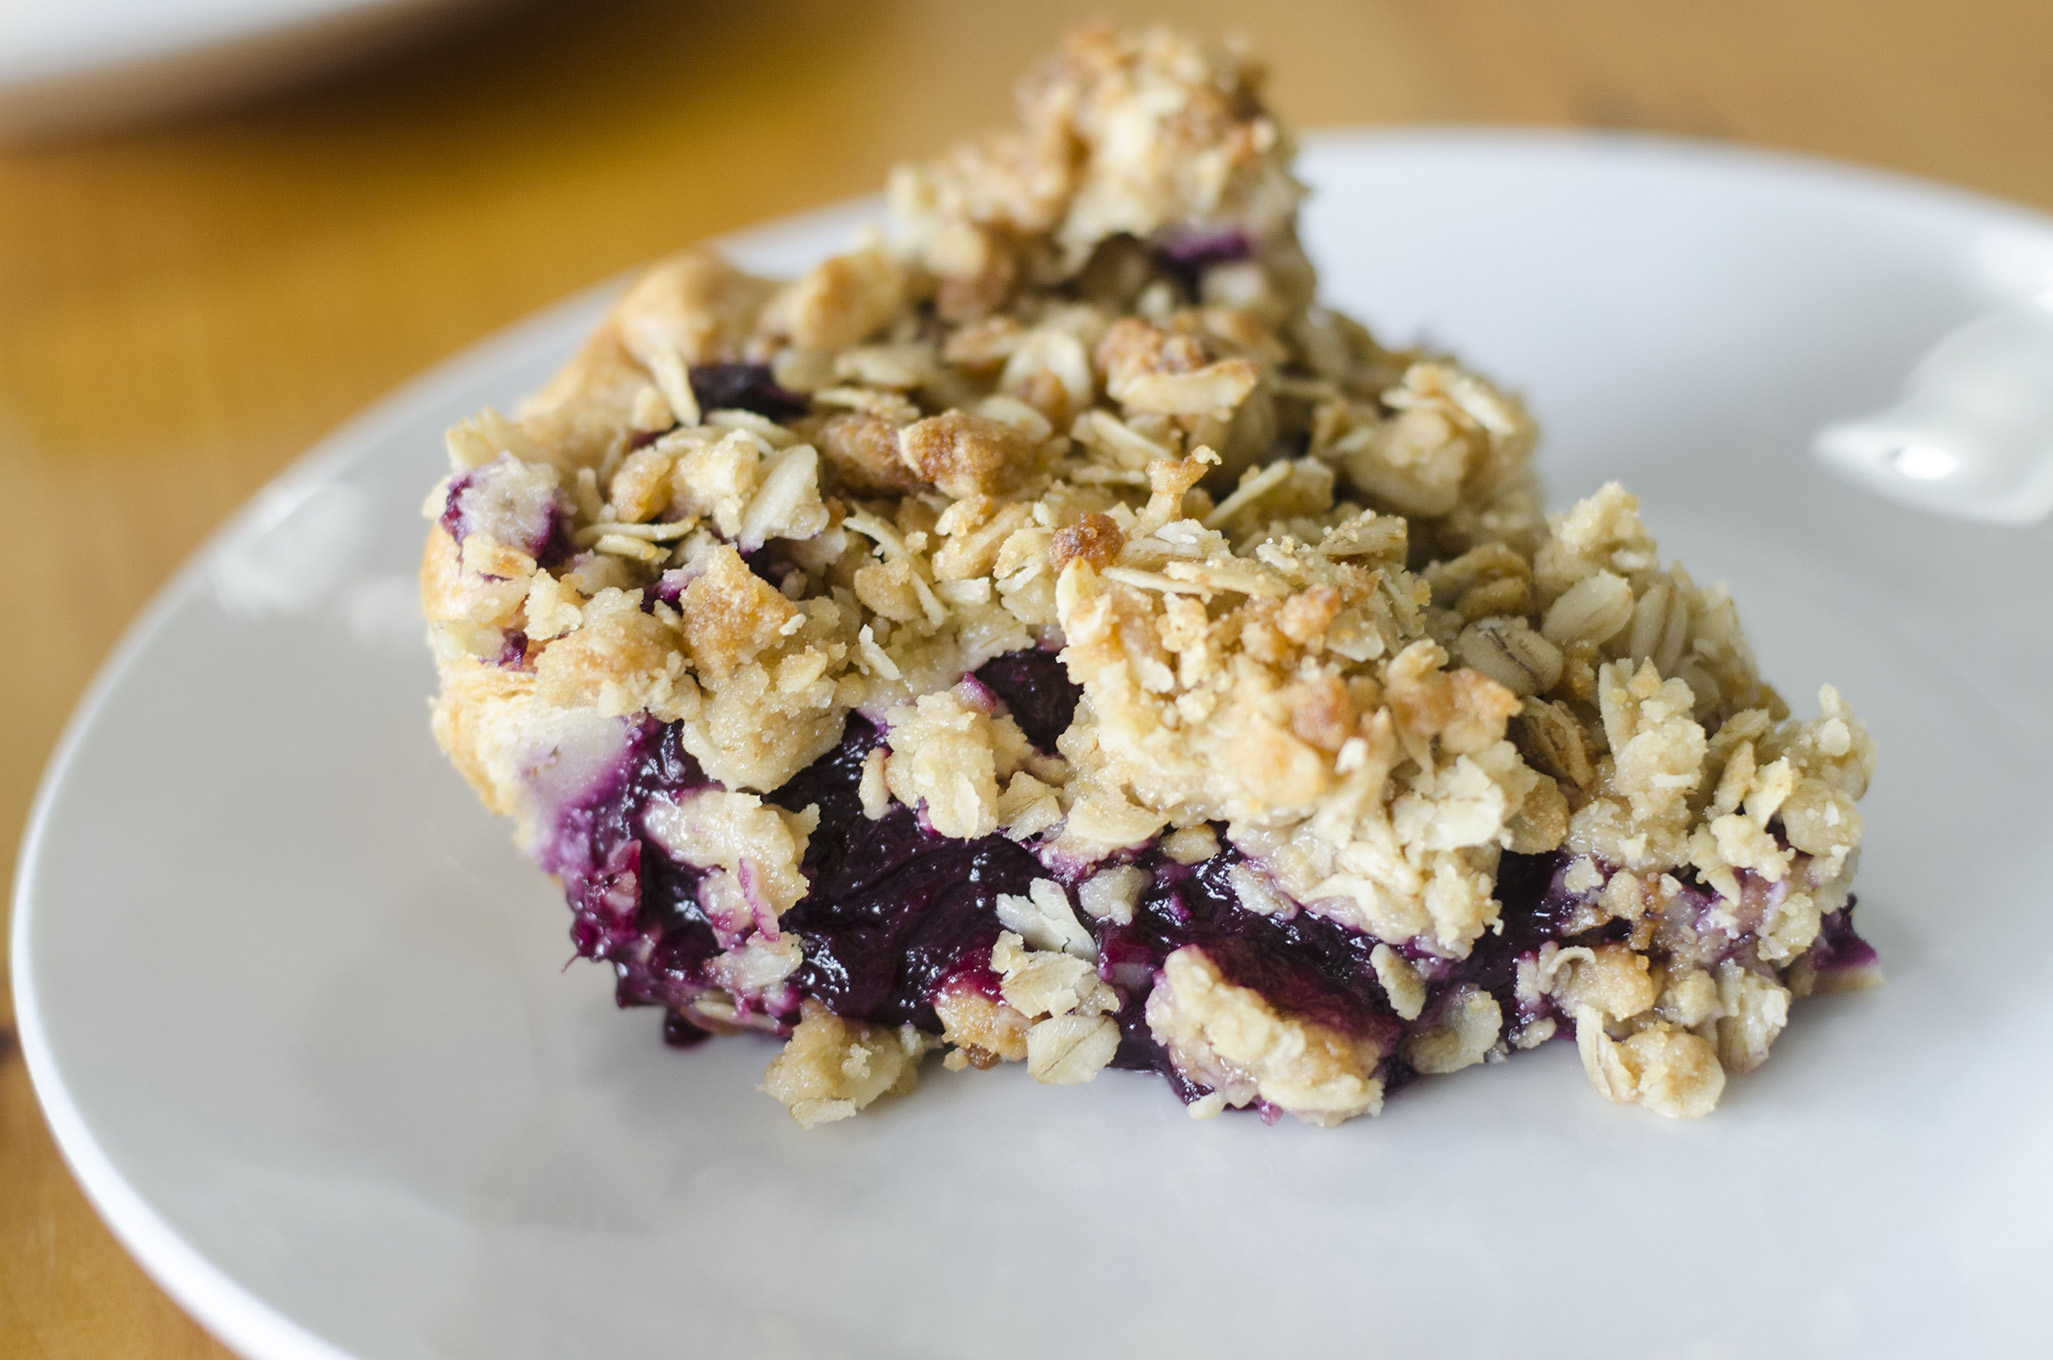 Blueberry Rhubarb Crumble Pie from Riverside Pie Cafe in Windsor, Ontario.